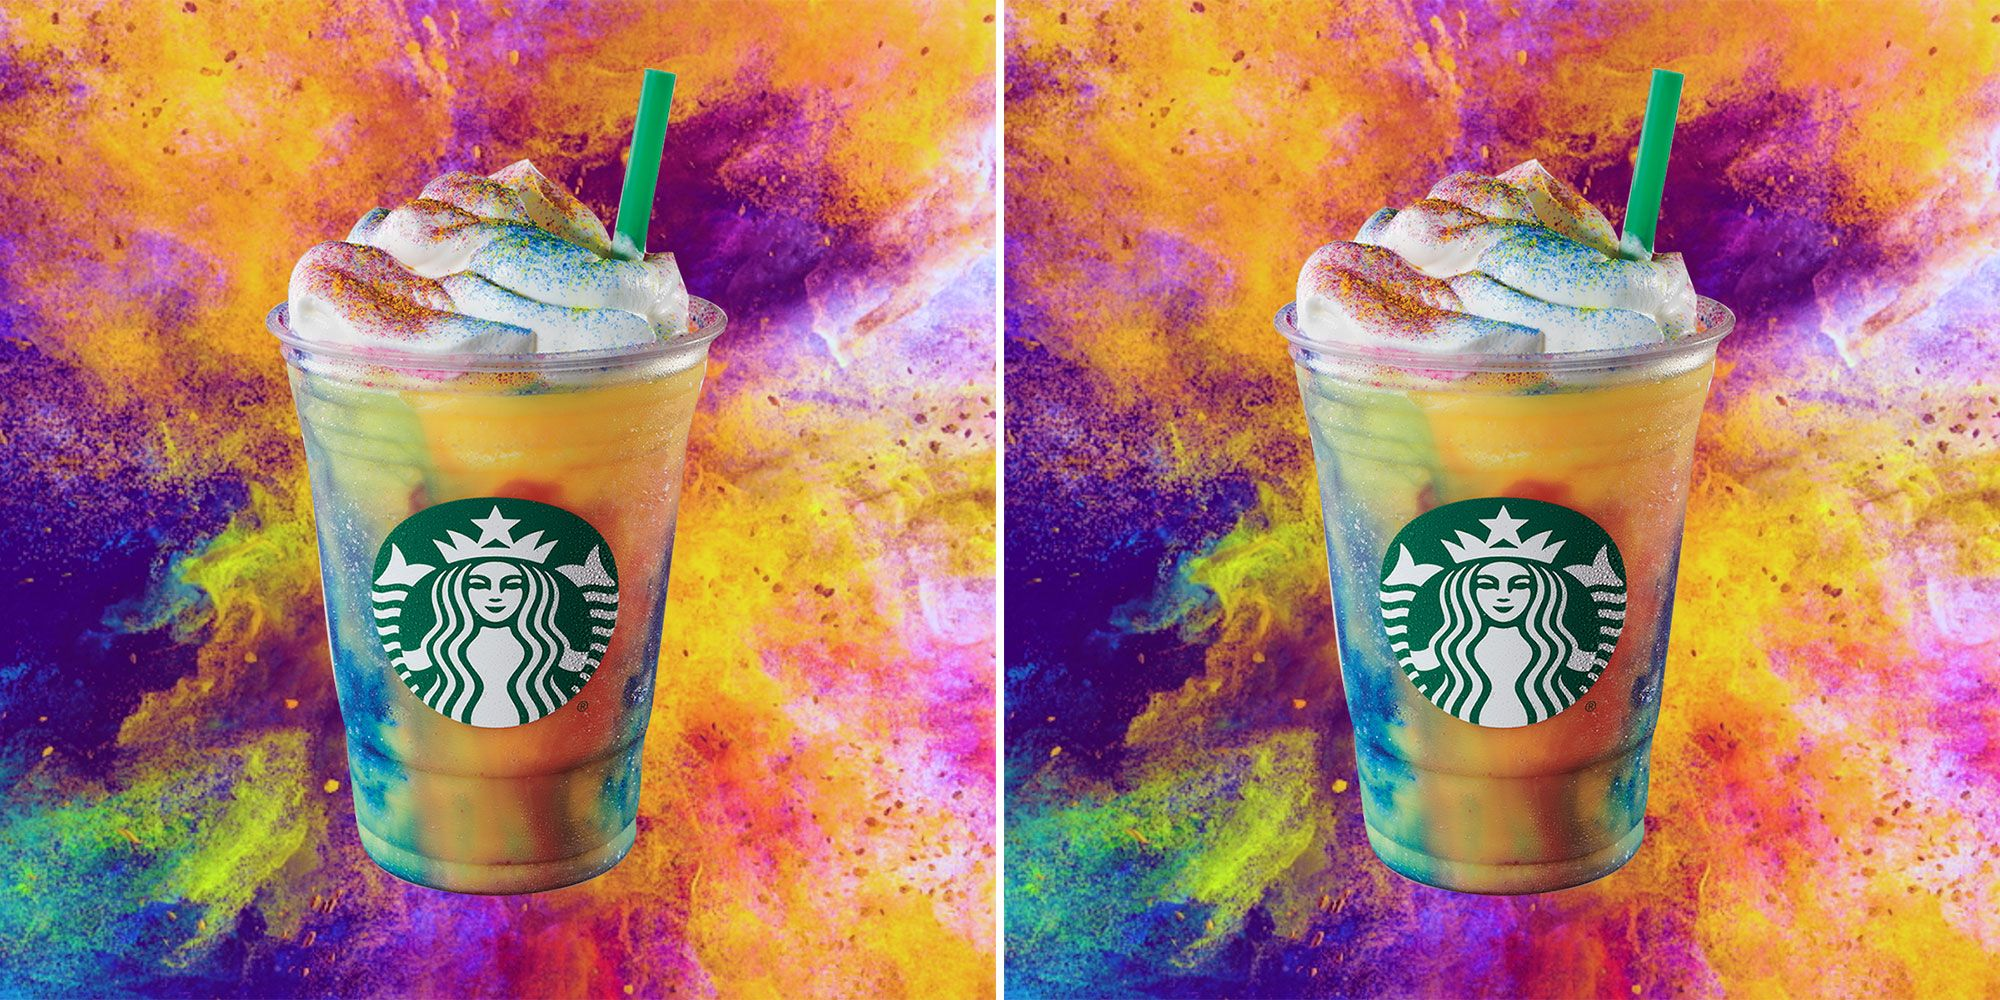 Starbucks Confirms Tie-Dye Frappuccinos Are Coming To Stores July 10